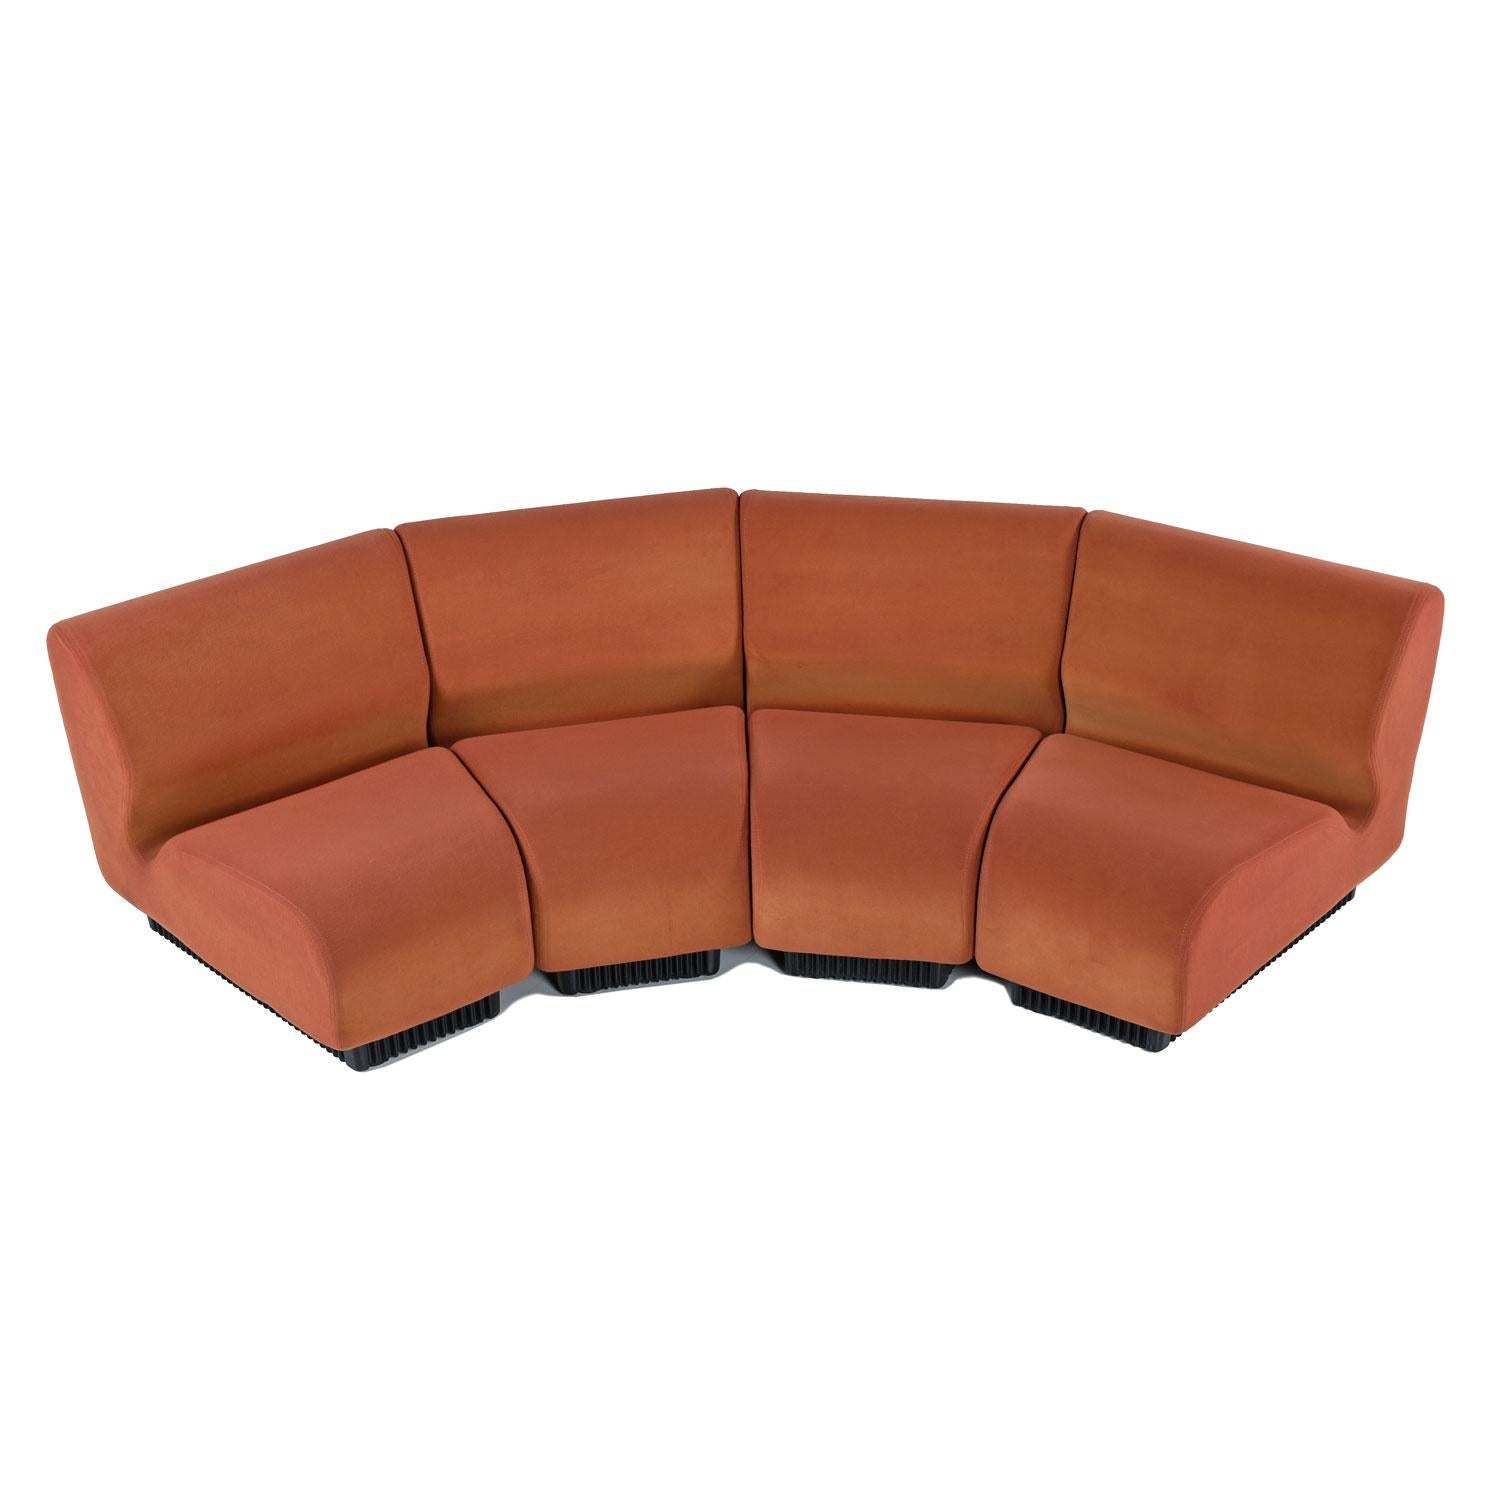 Don Chadwick Modular Curved Wedge Sectional Sofa Couch For